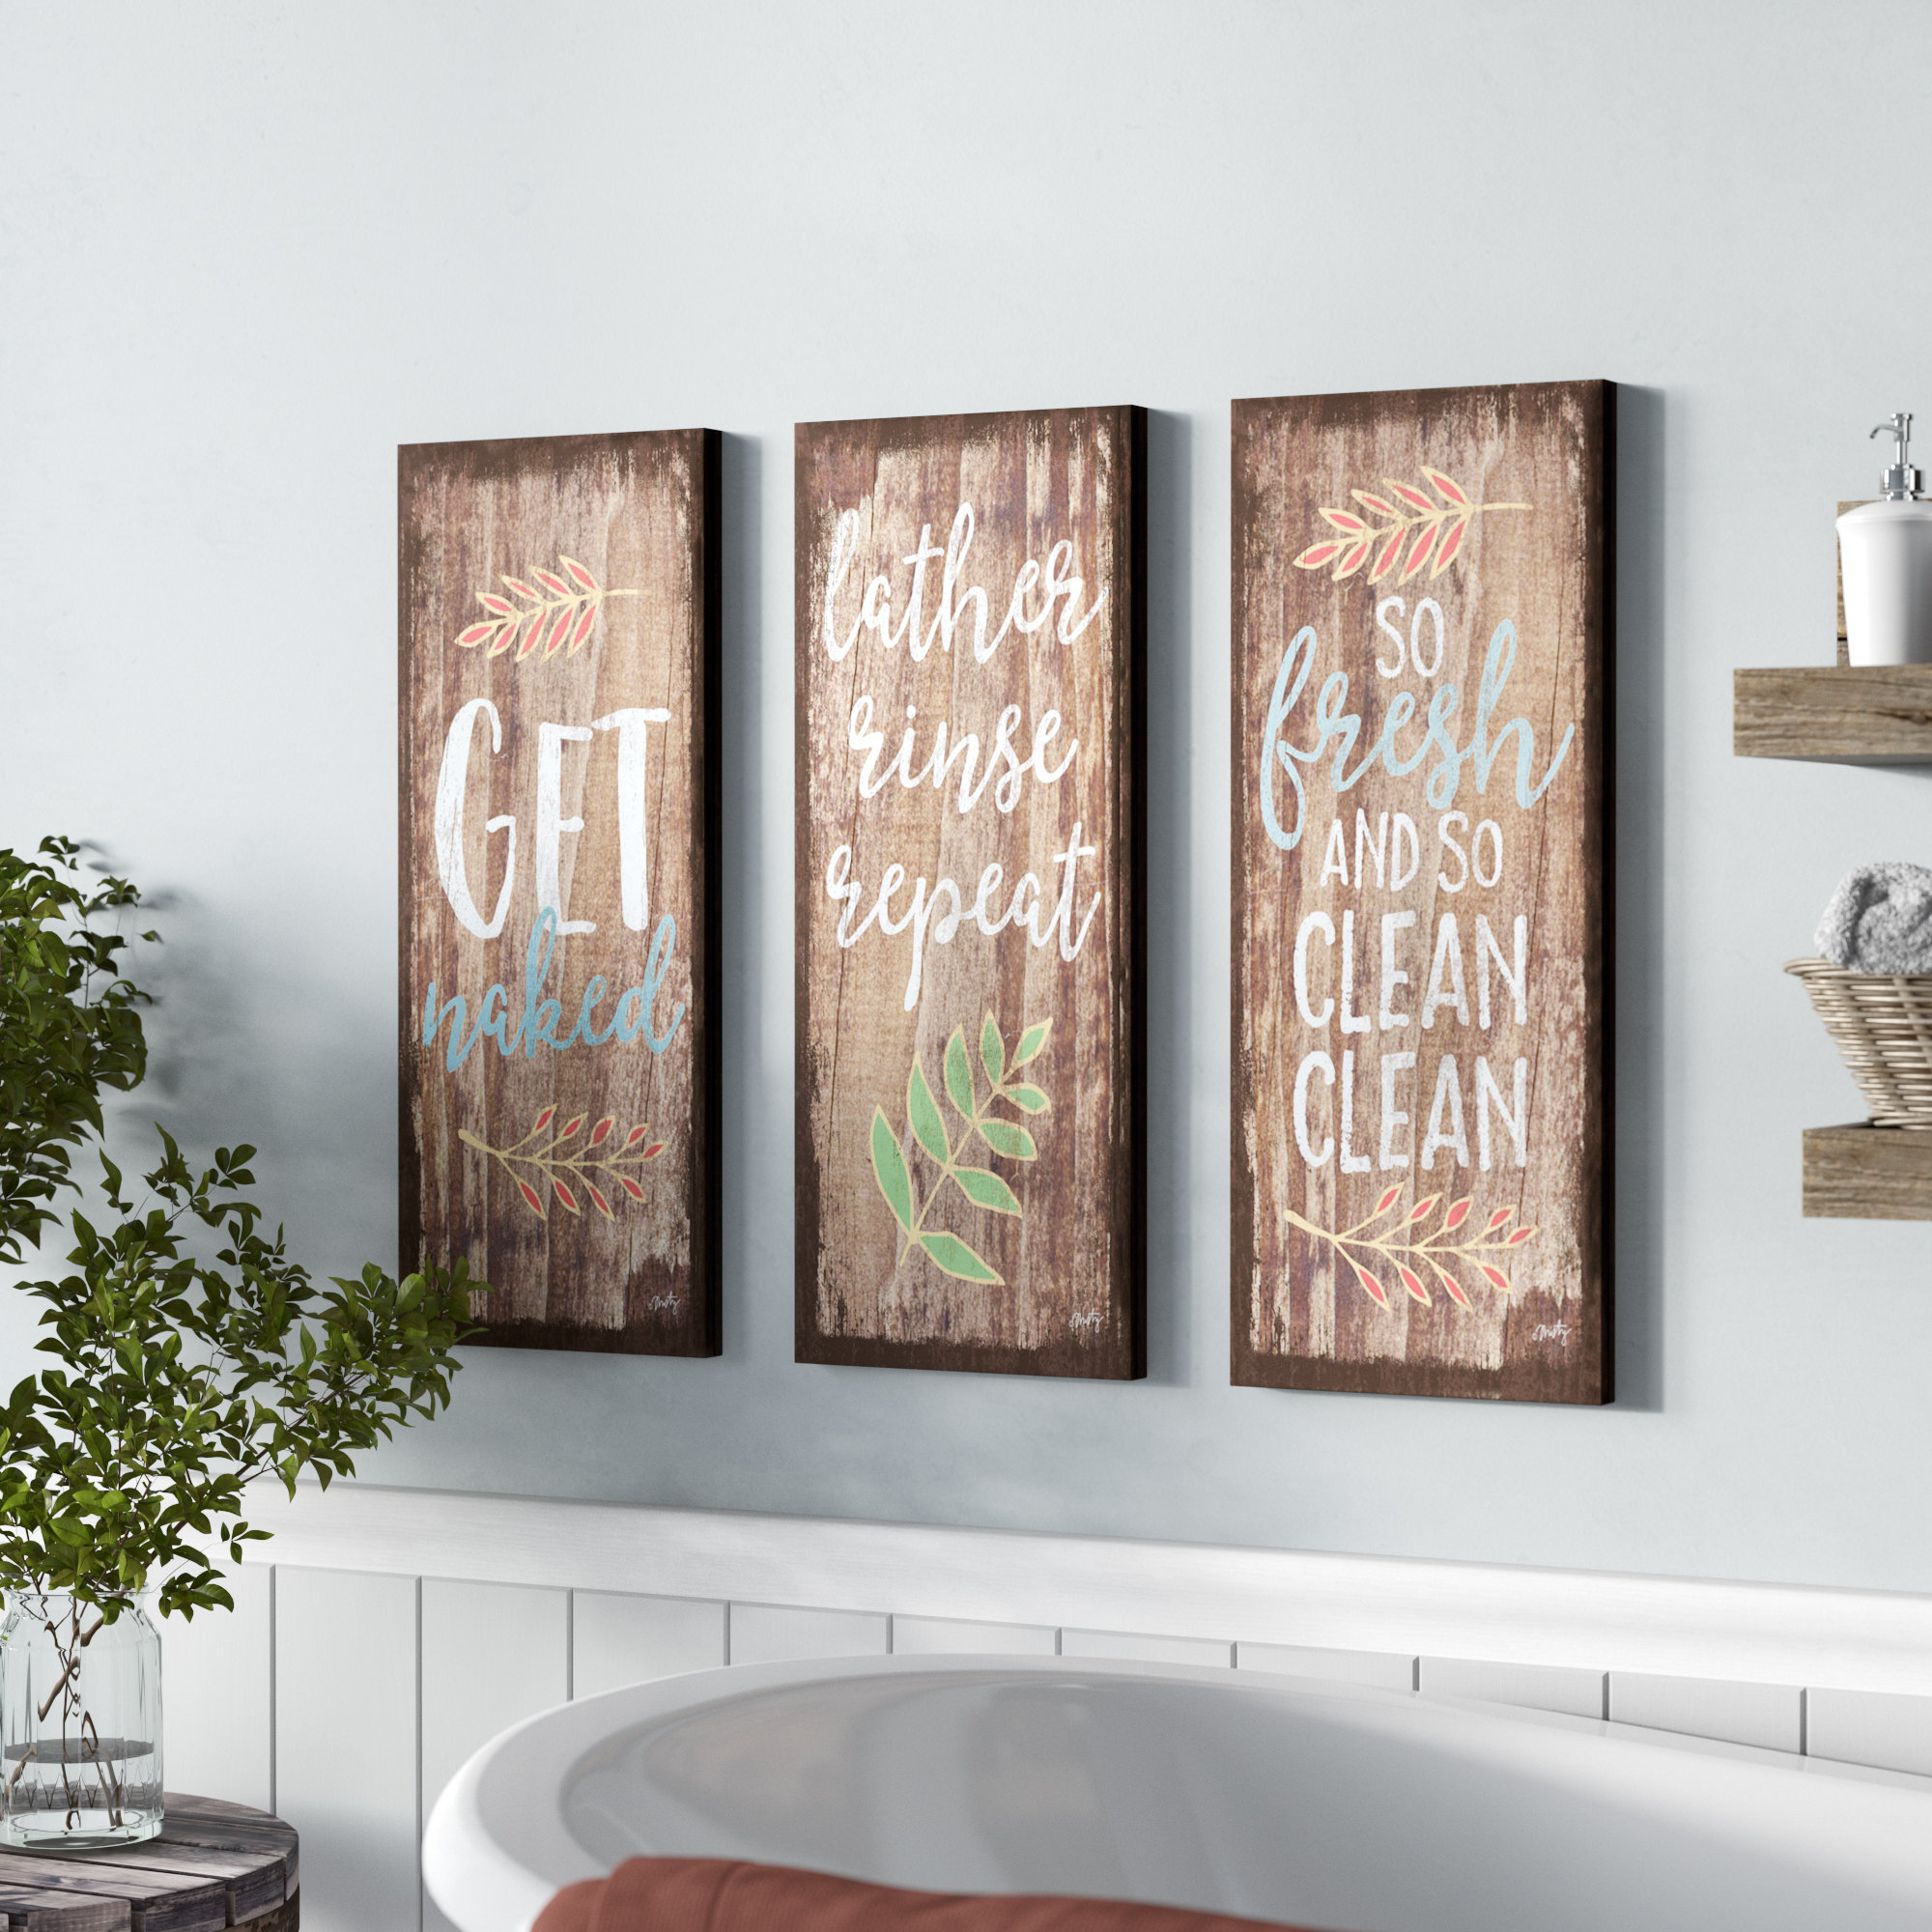 Bath & Laundry Wall Art for 4 Piece Metal Wall Decor Sets (Image 11 of 30)